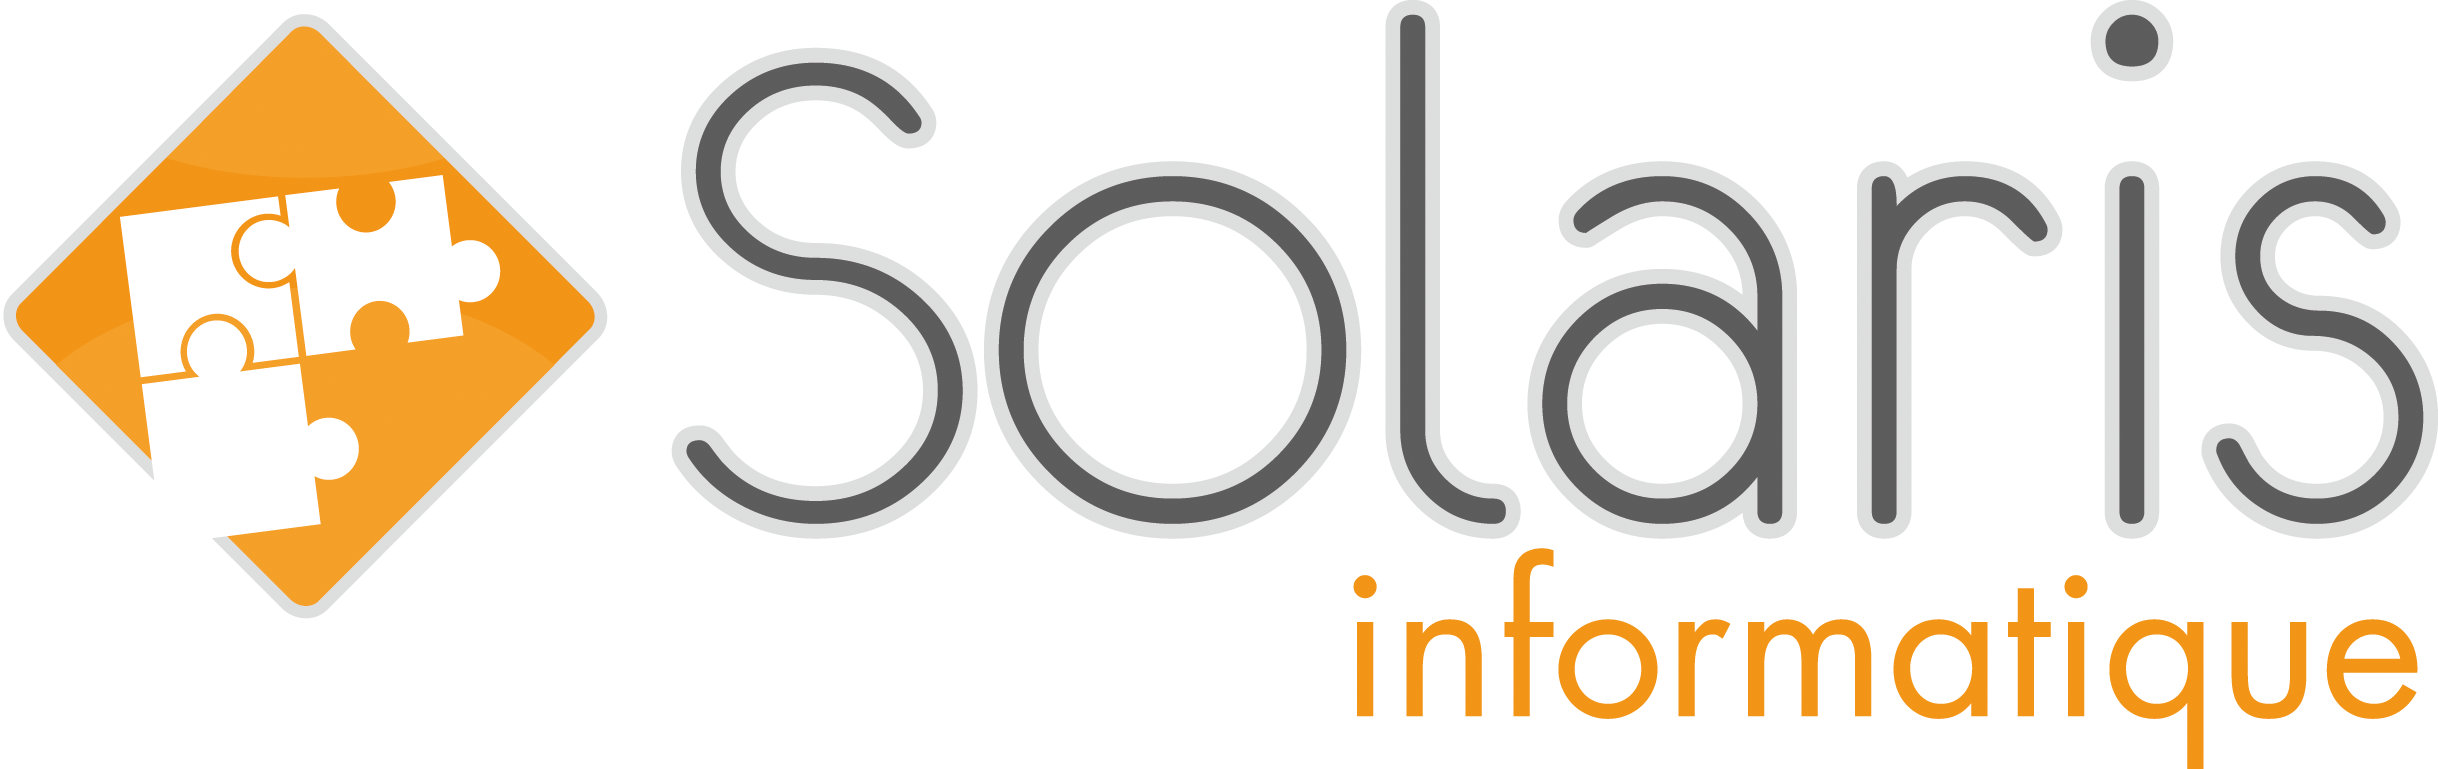 Solaris Informatique